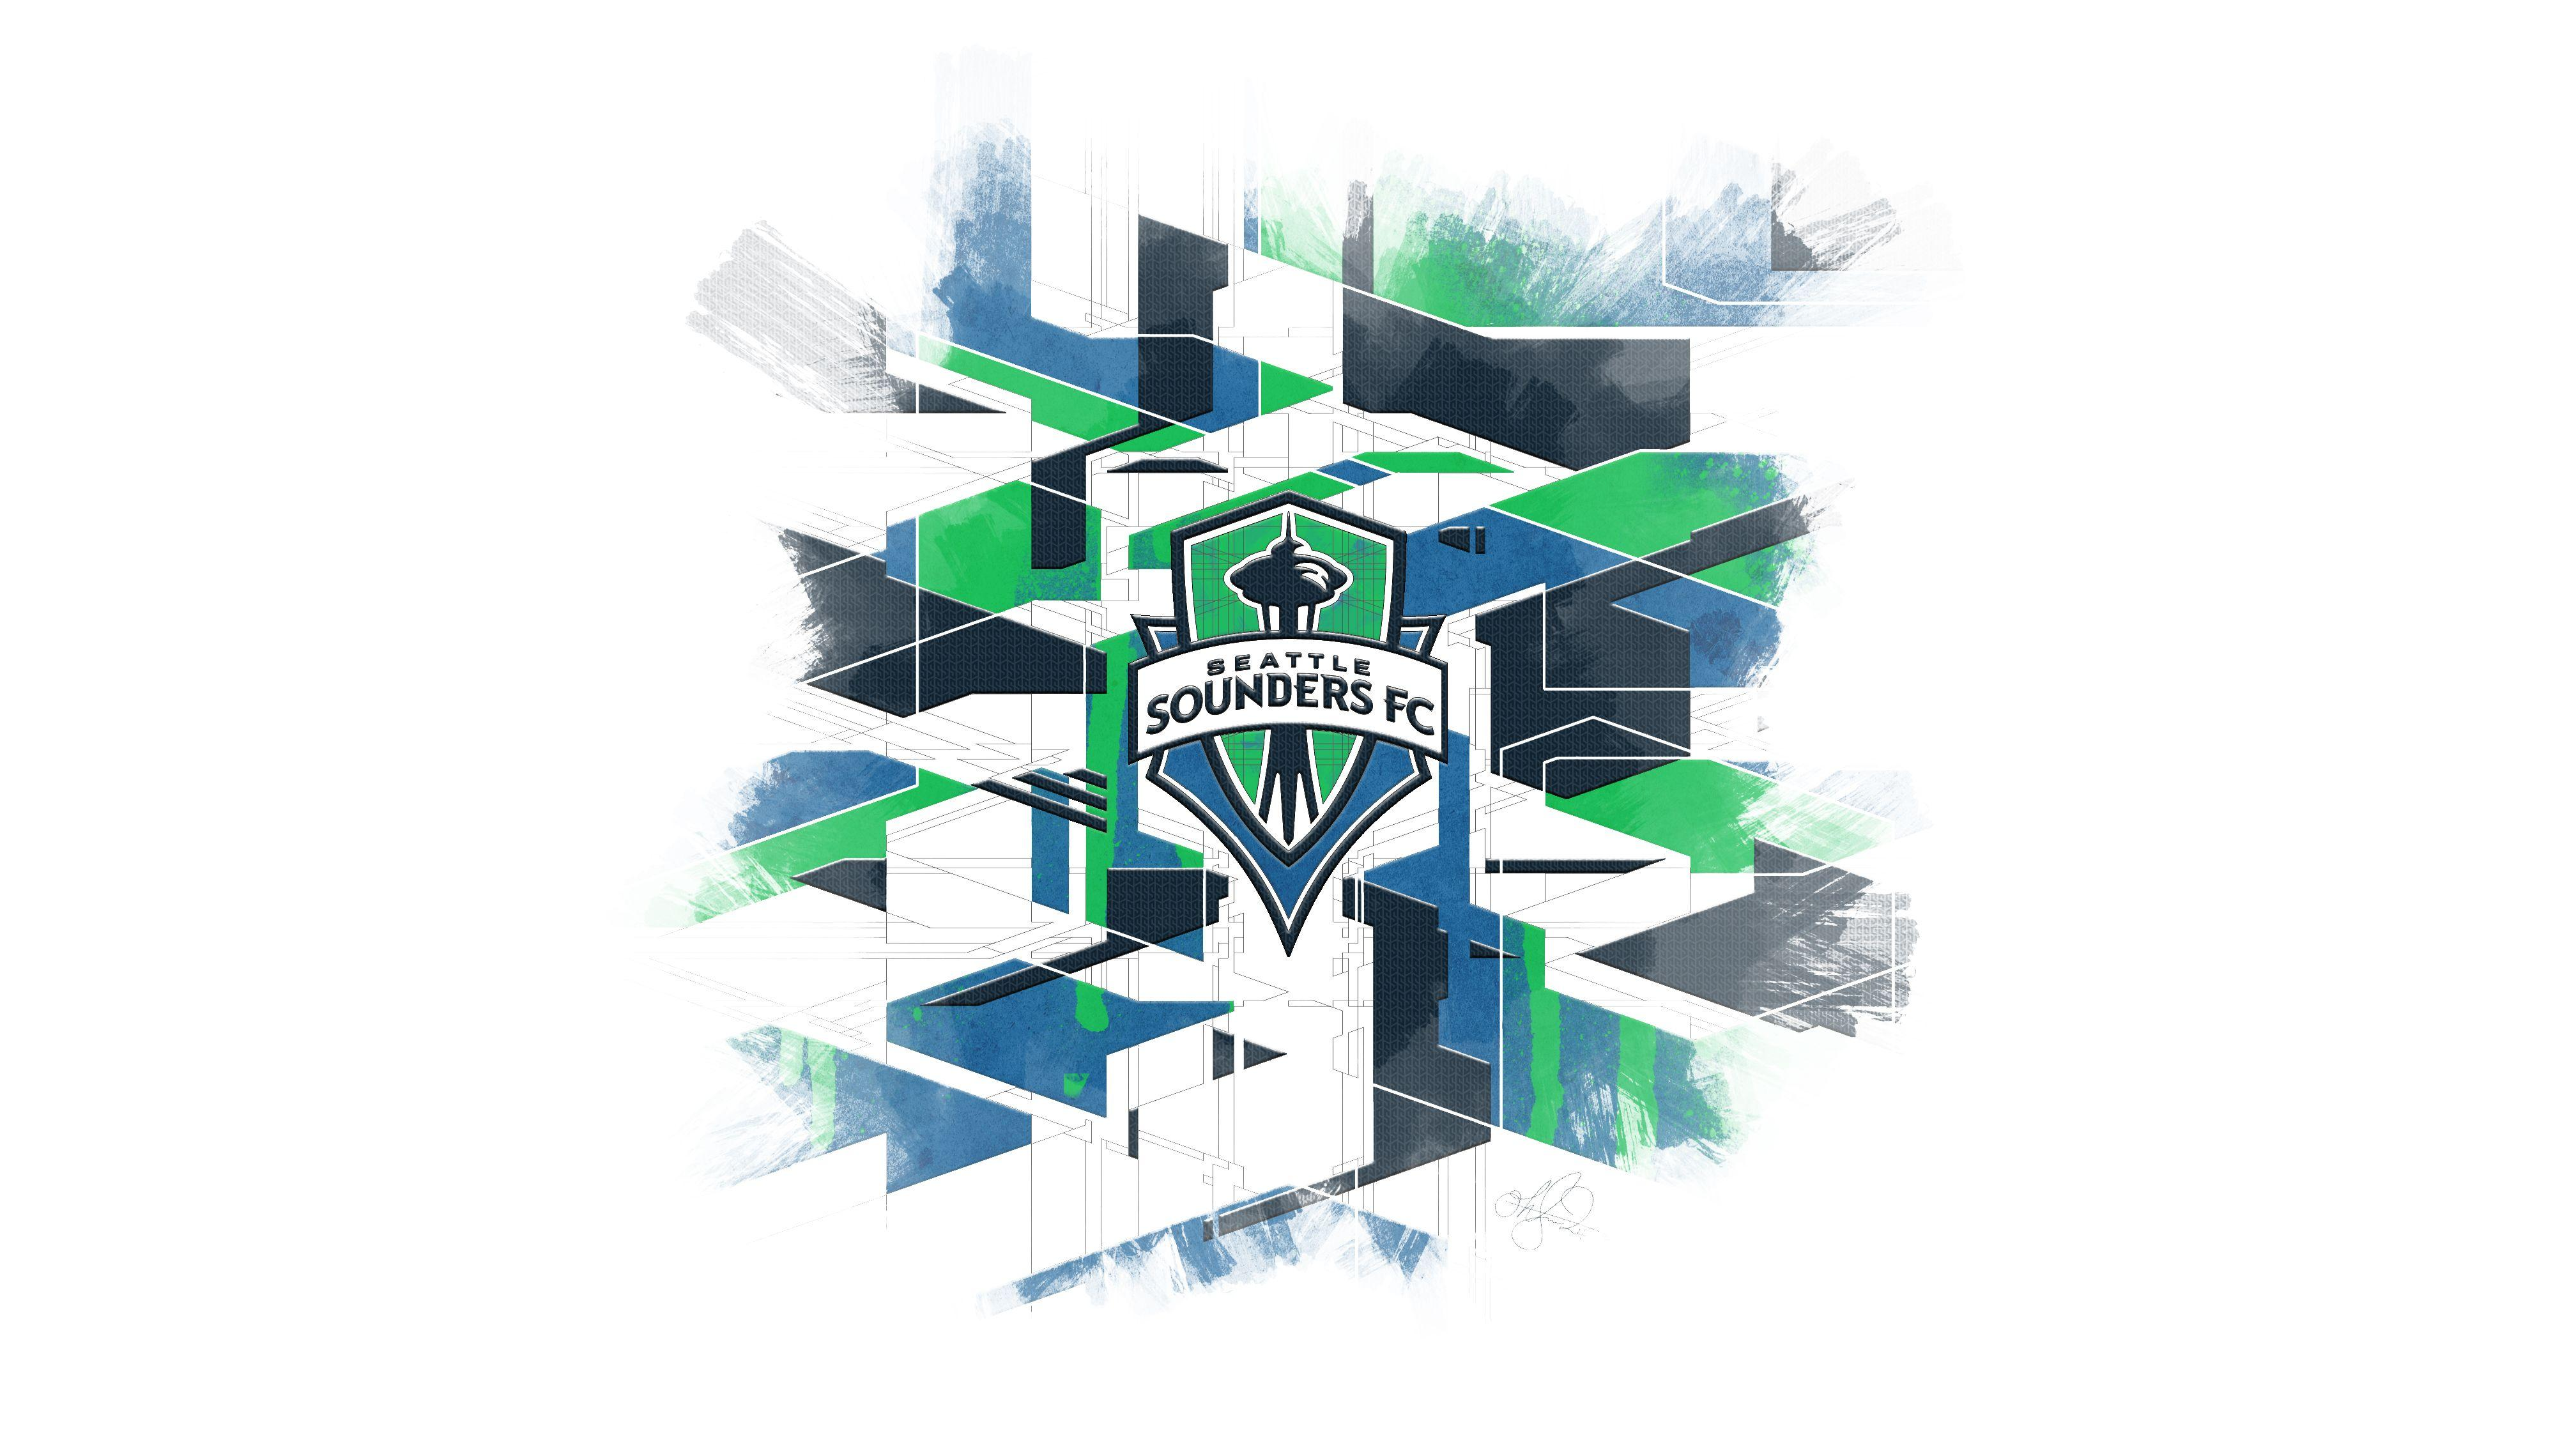 Seattle Sounders goalkeeper Stefan Frei's original design now